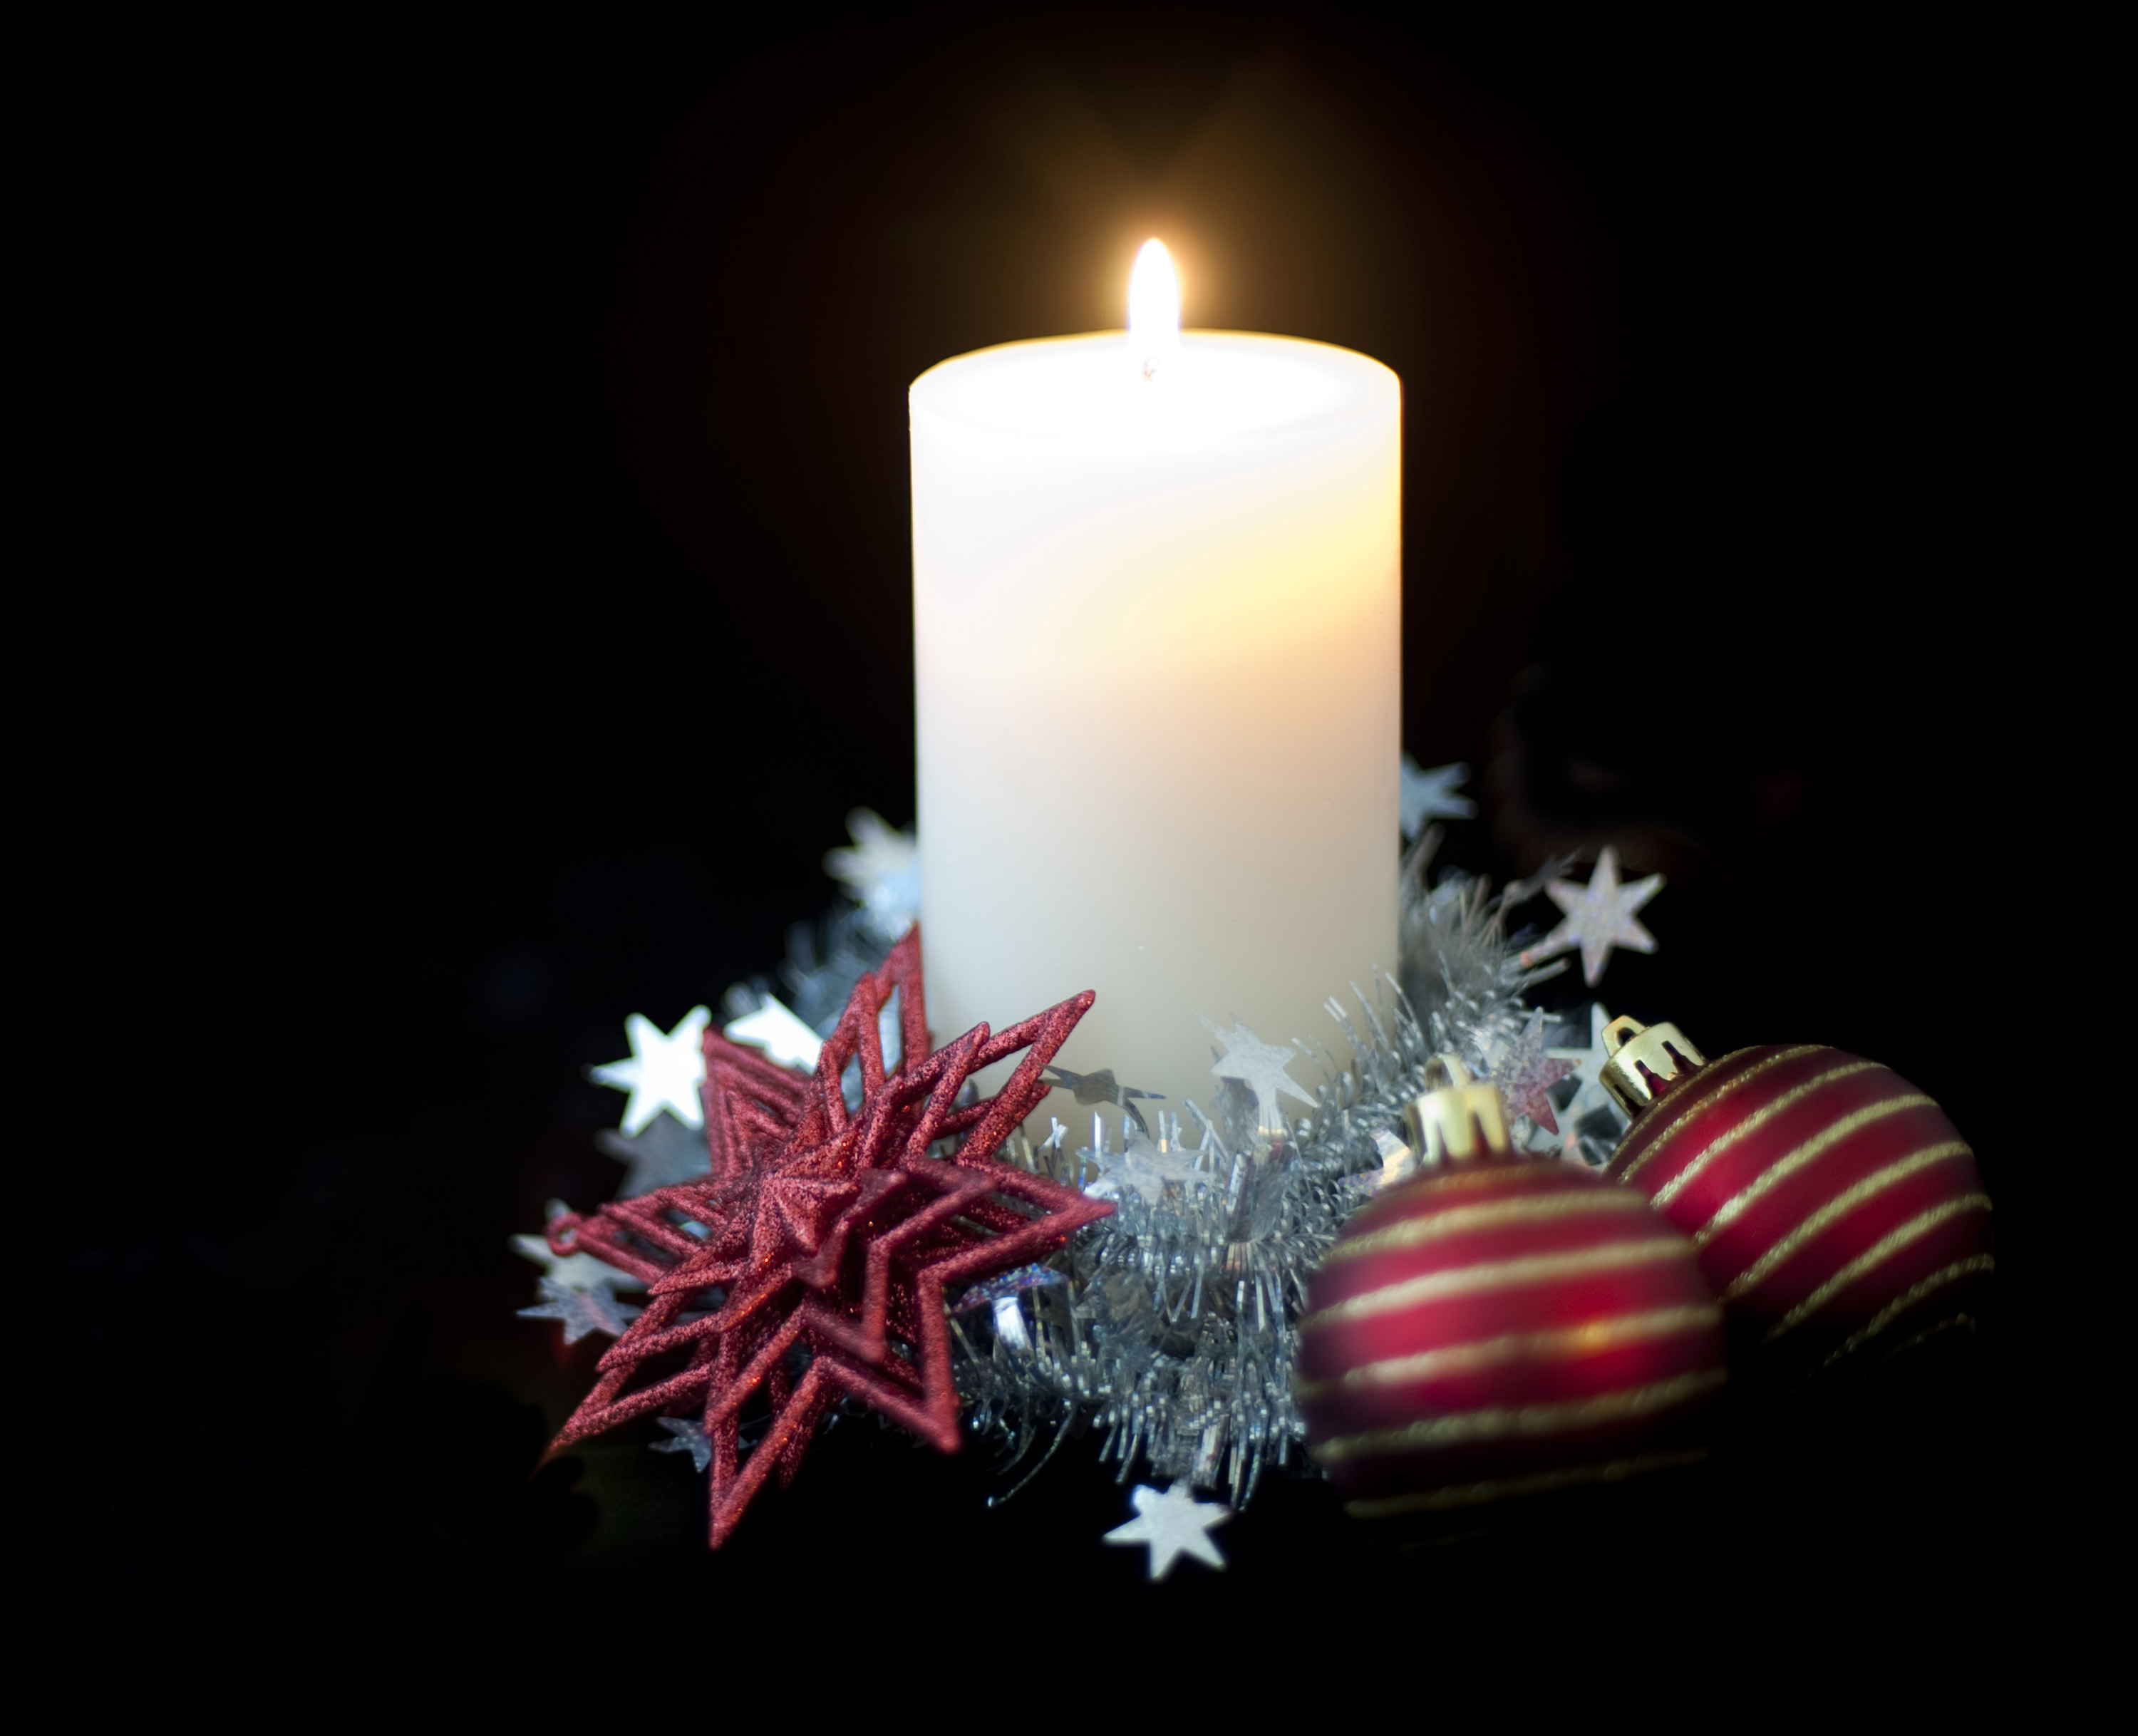 a soft focus candle and flame surrounded by christmas ornaments and tinsel